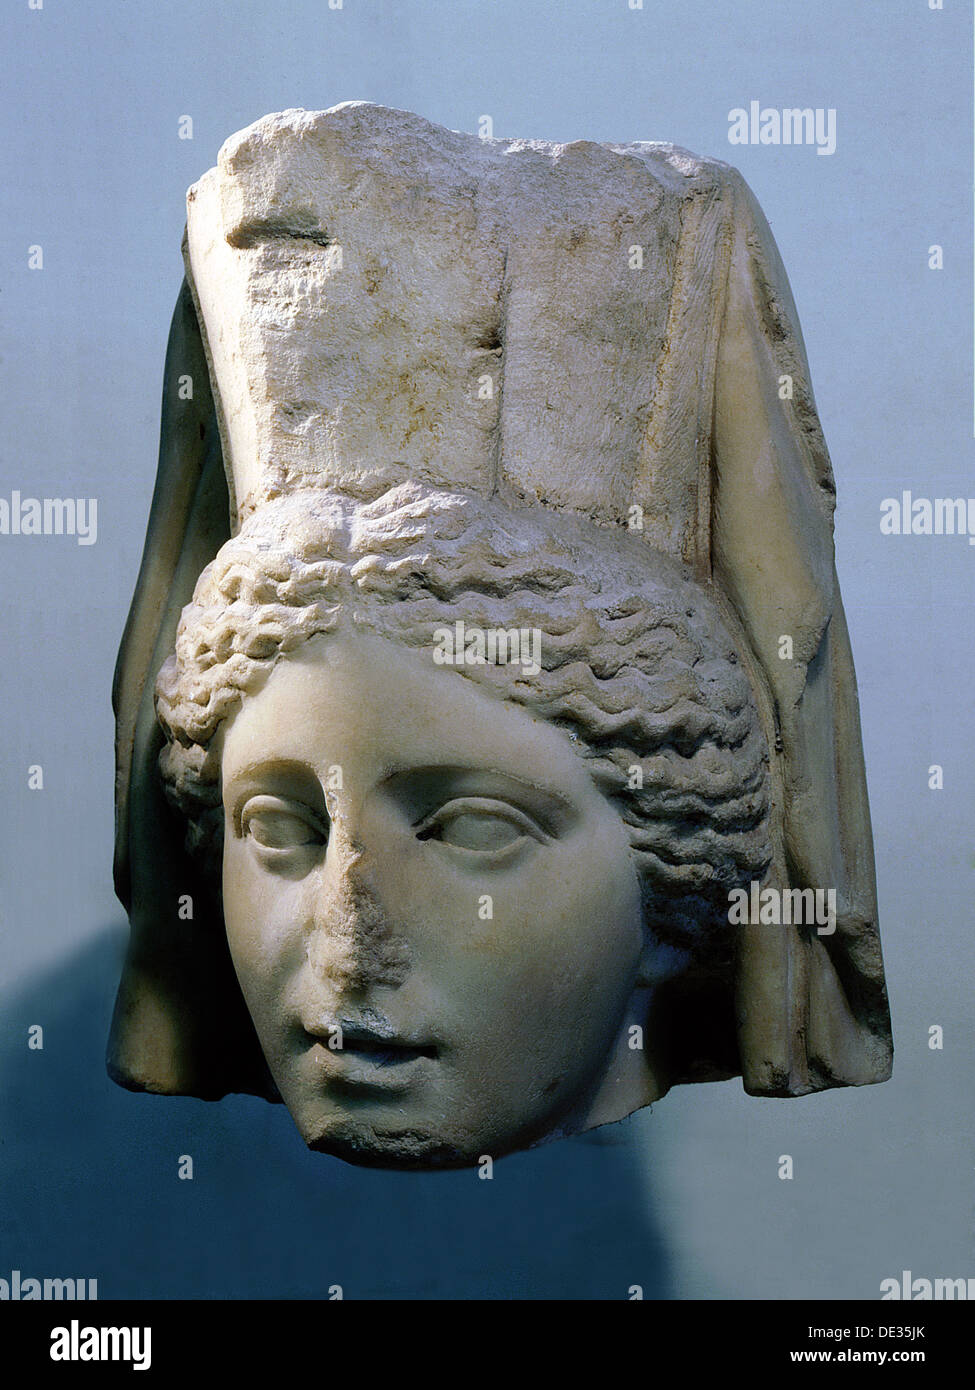 The head of the mother-goddess Cybele whose worship was imported to Rome from Phrygia in Asia Minor in the second century BC. - Stock Image